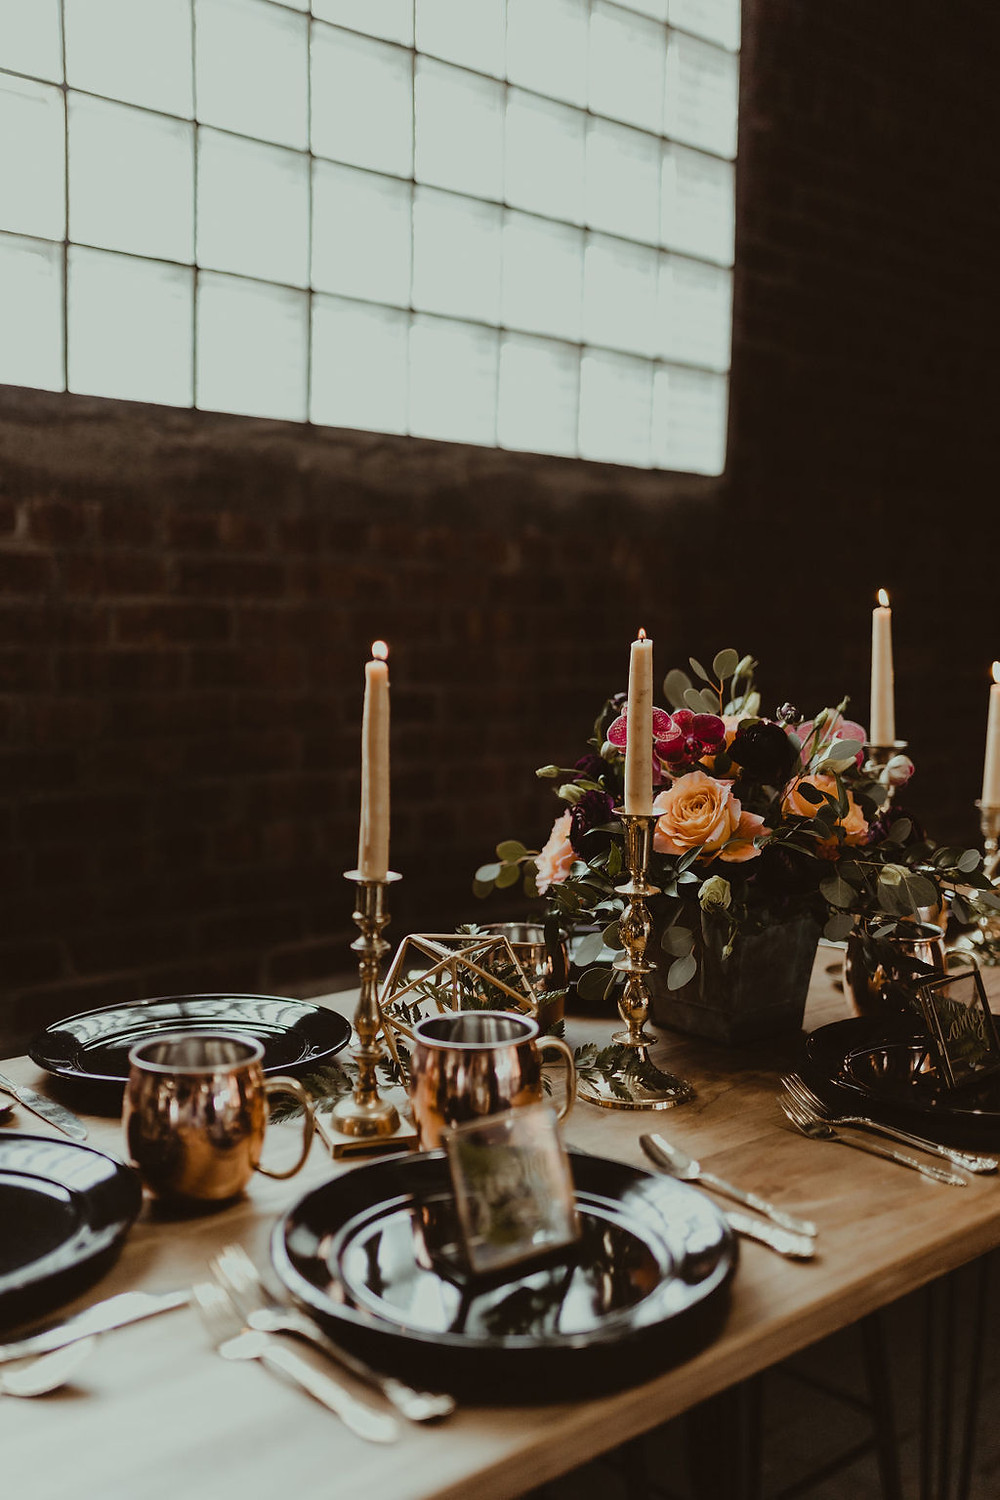 Brass Candle Sticks Decor: Industrial & Copper Styled Wedding Shoot at Smith's Market featured on Pretty Little Vintage Co.